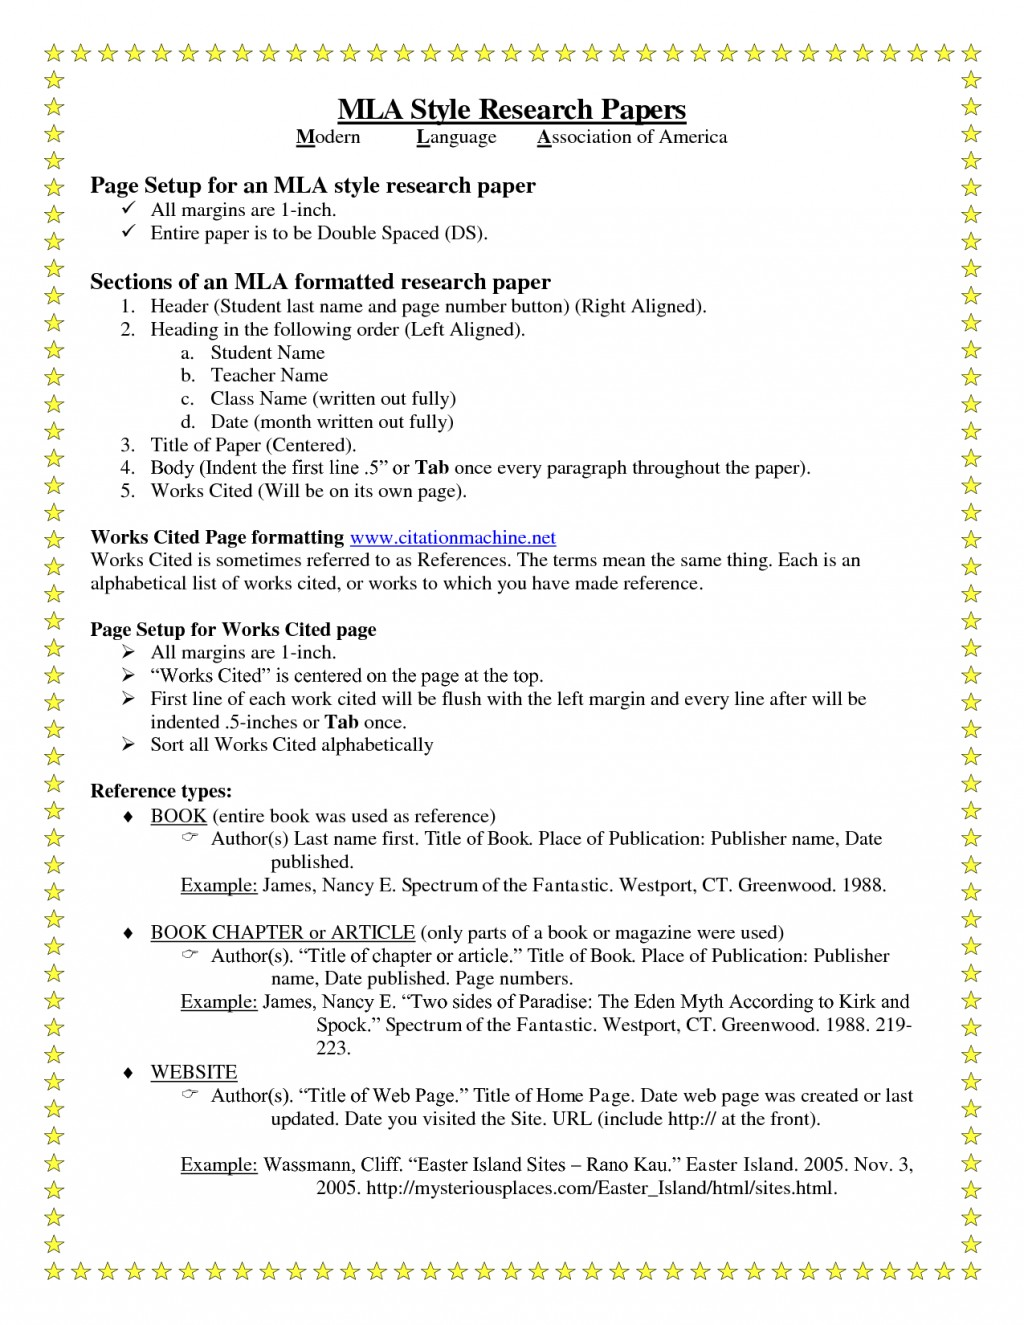 017 How To Have Research Paper Published Order Of Headings Stirring A Get An Academic India Large